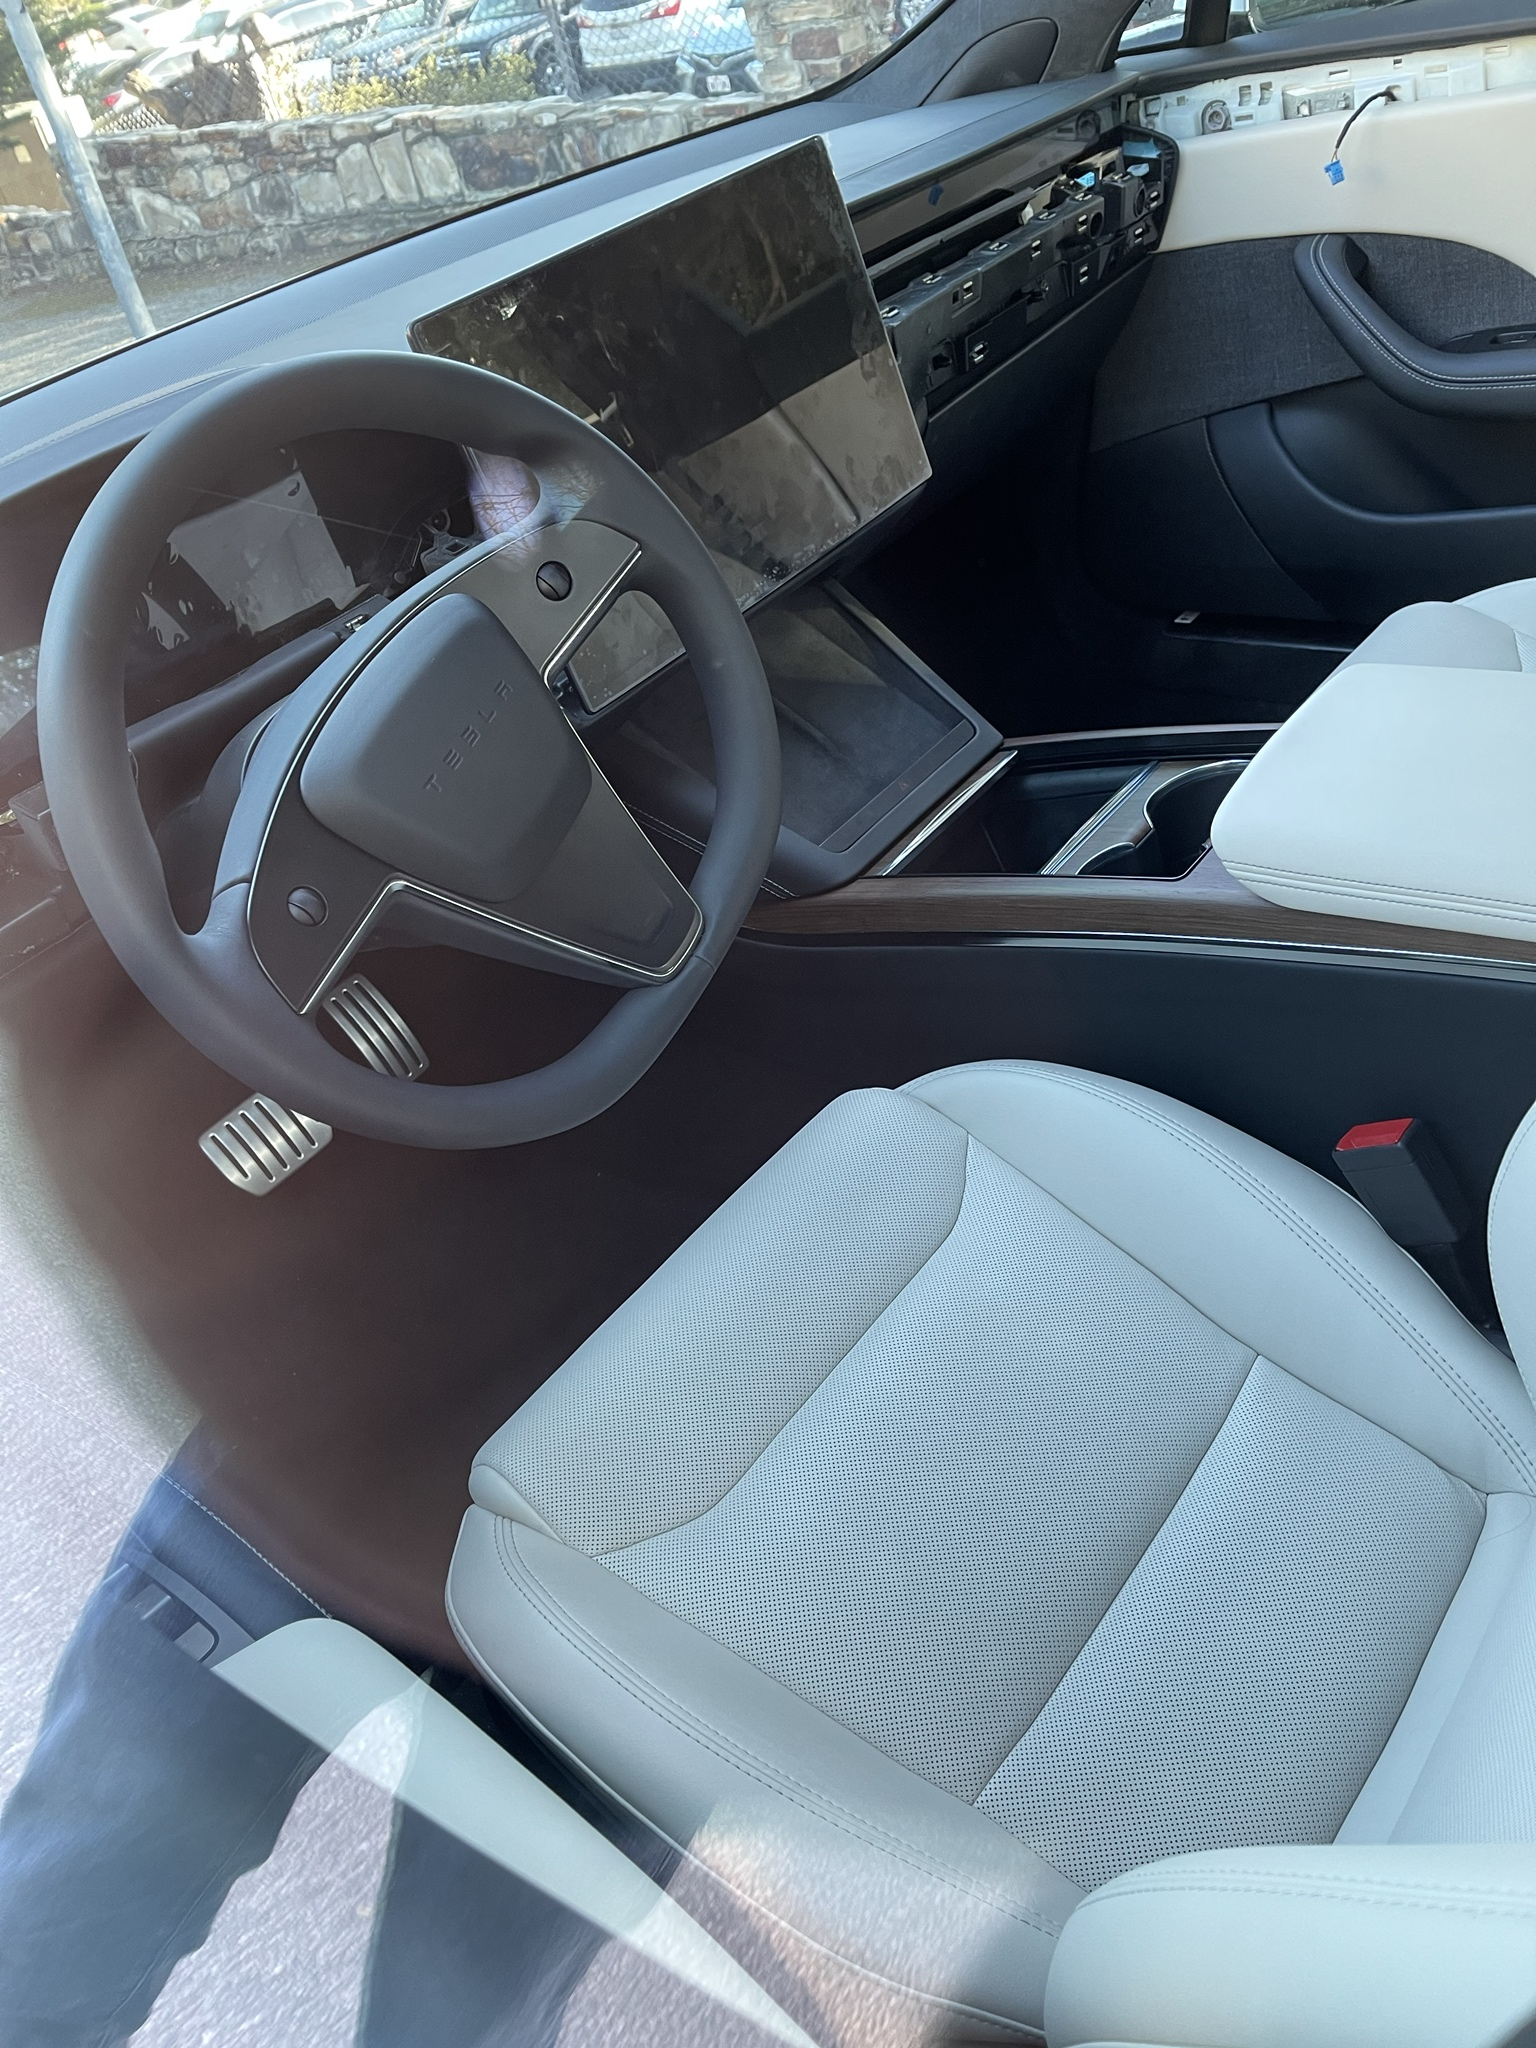 model-s-plaid-interior